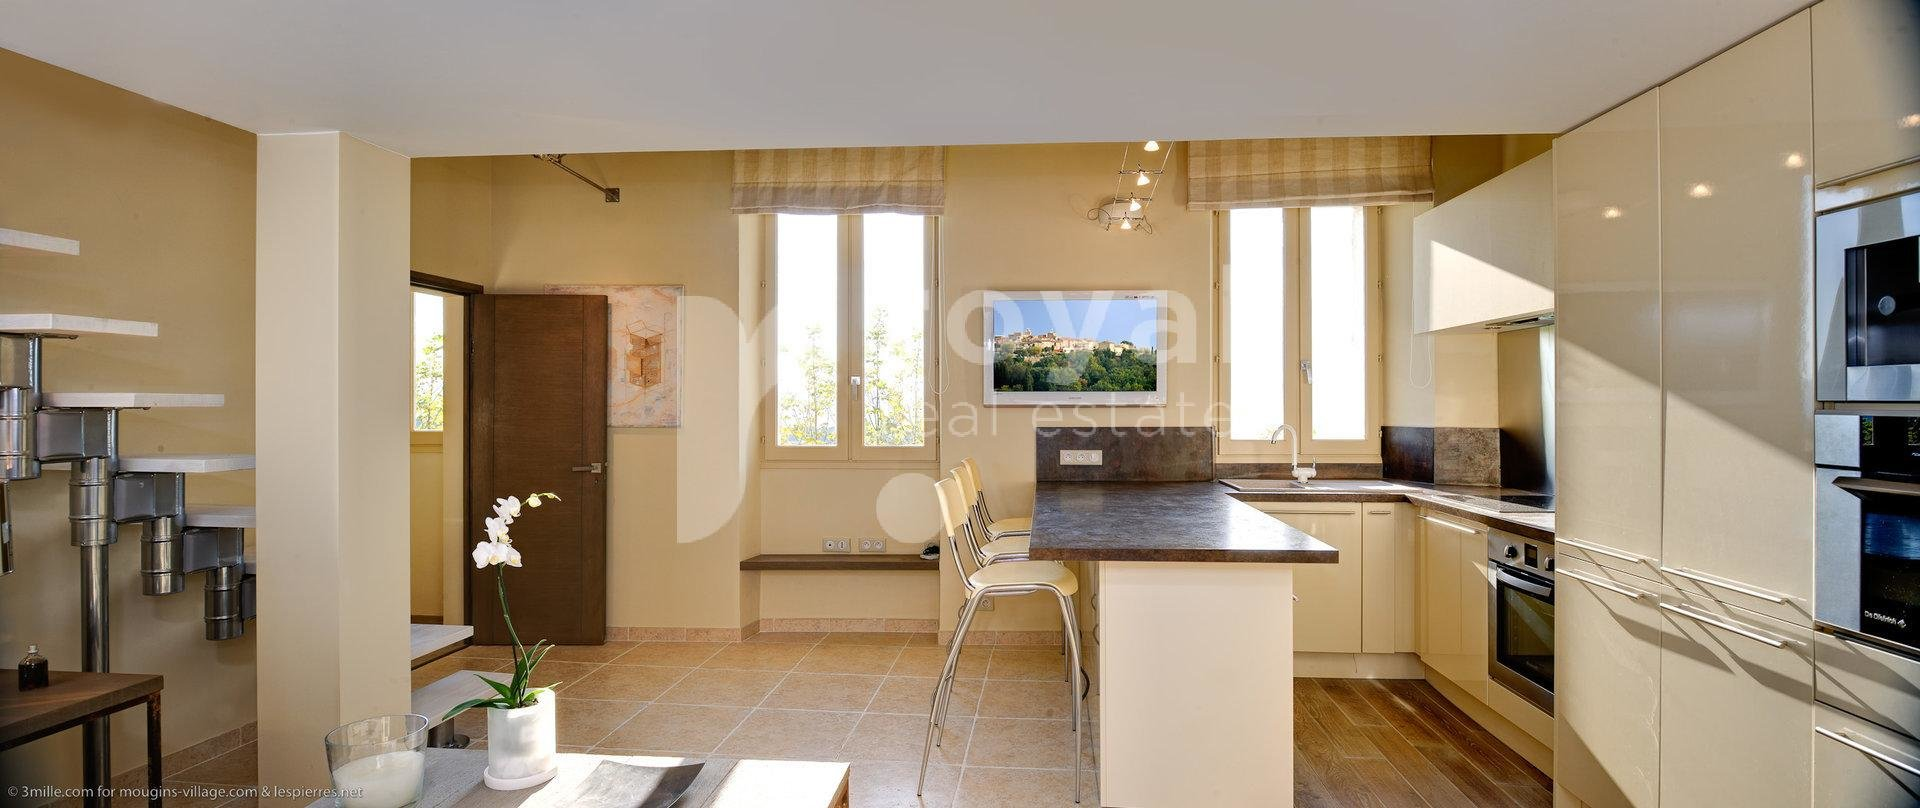 FOR SALE APARTMENT - MOUGINS